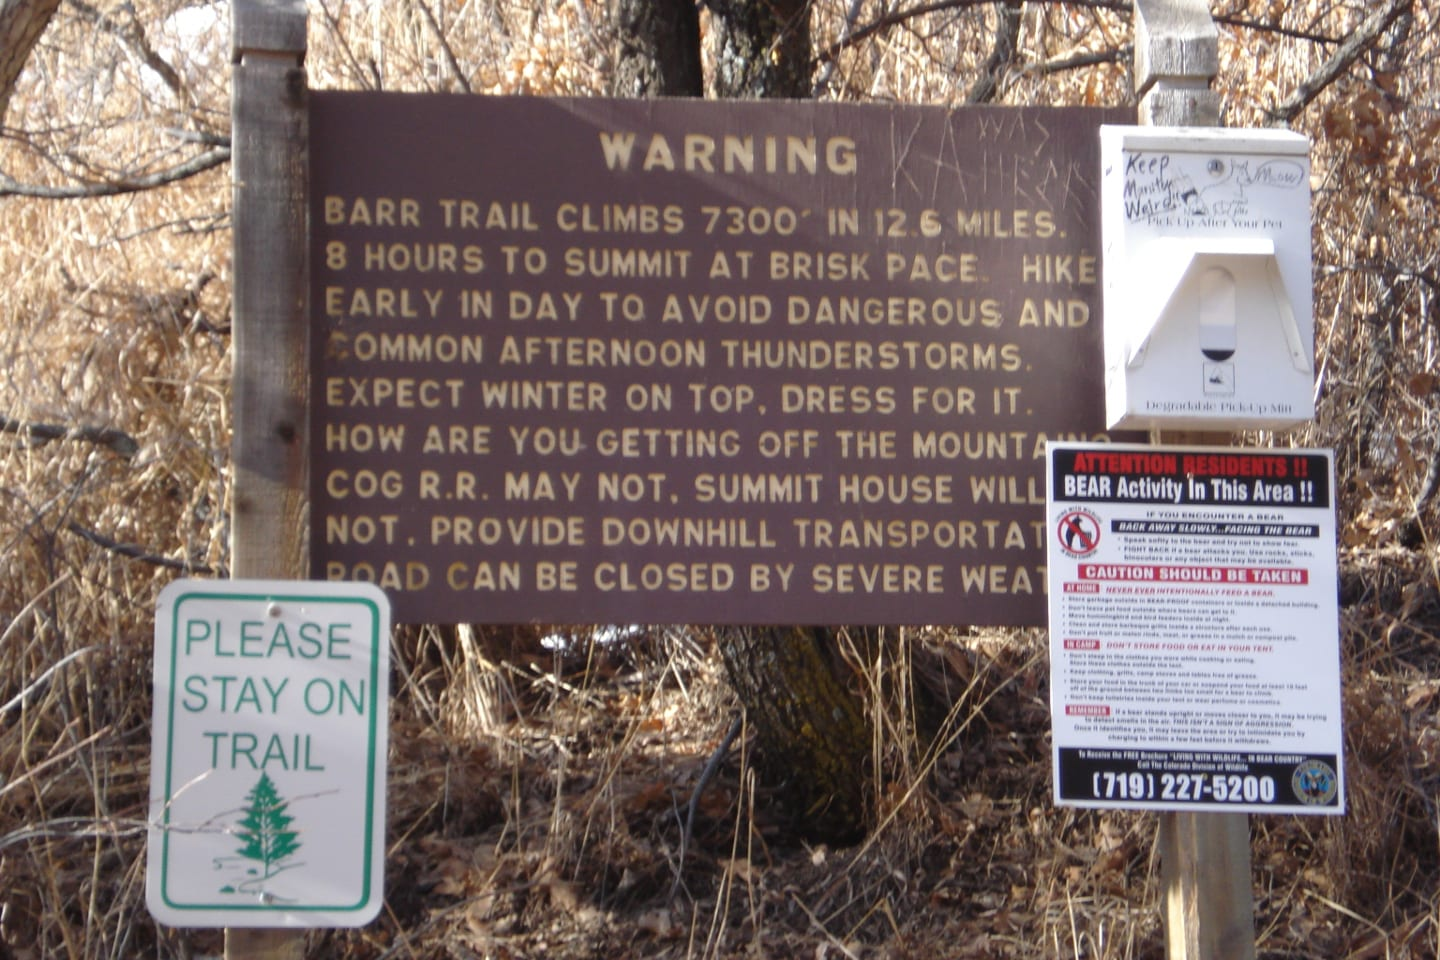 Barr Trailhead Warning Sign Colorado